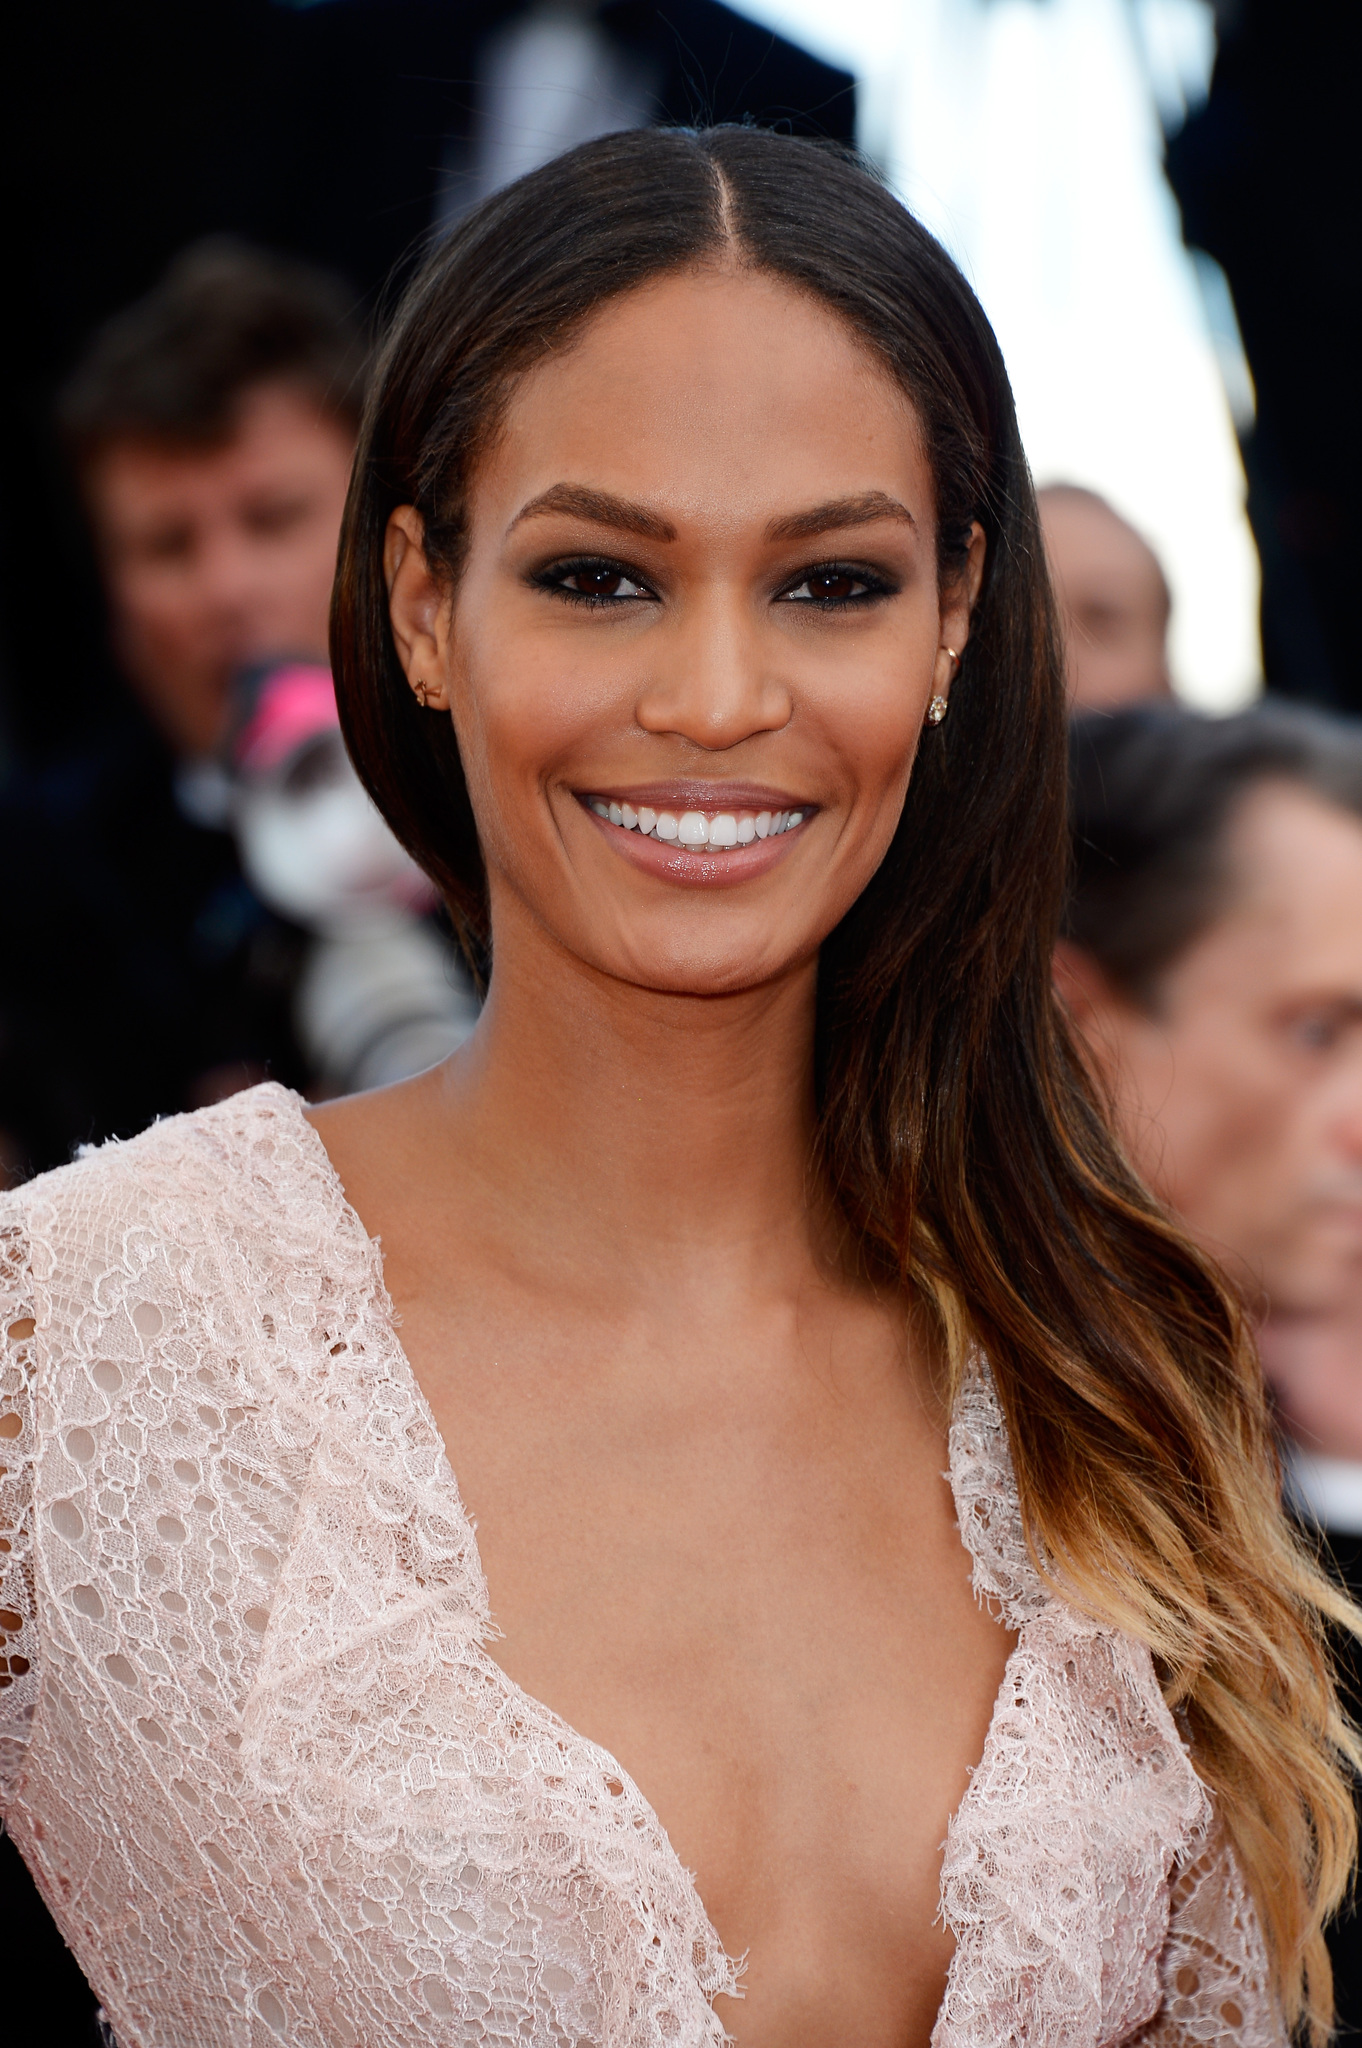 Joan Smalls Smile - Joan Smalls Net Worth, Pics, Wallpapers, Career and Biography